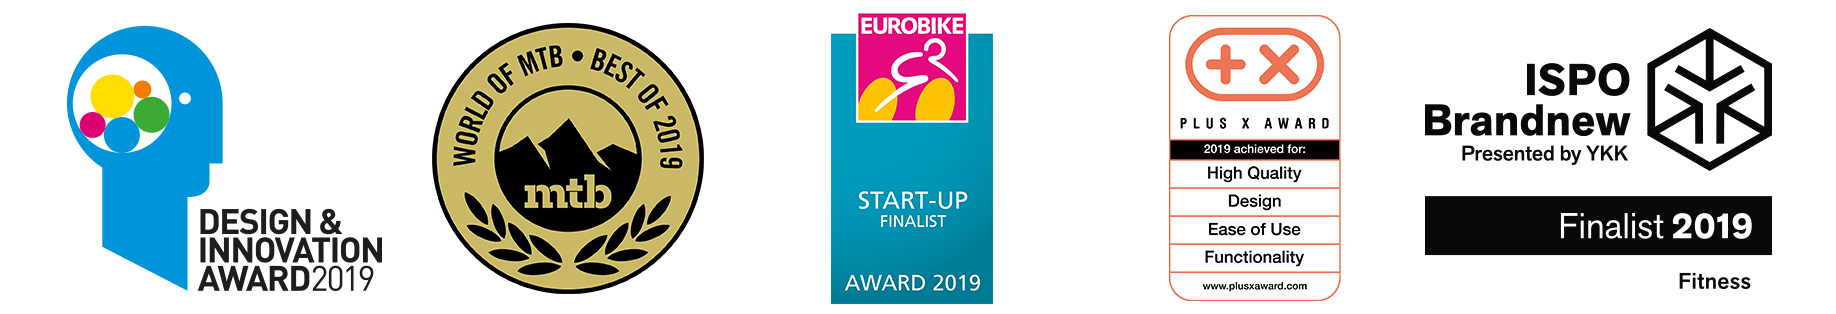 Praep ProPilot Design Innovation Award 2019 WOMTB Best of 2019 PlusX Award Ispo Brandnew 2019 Eurobike StartUp Award